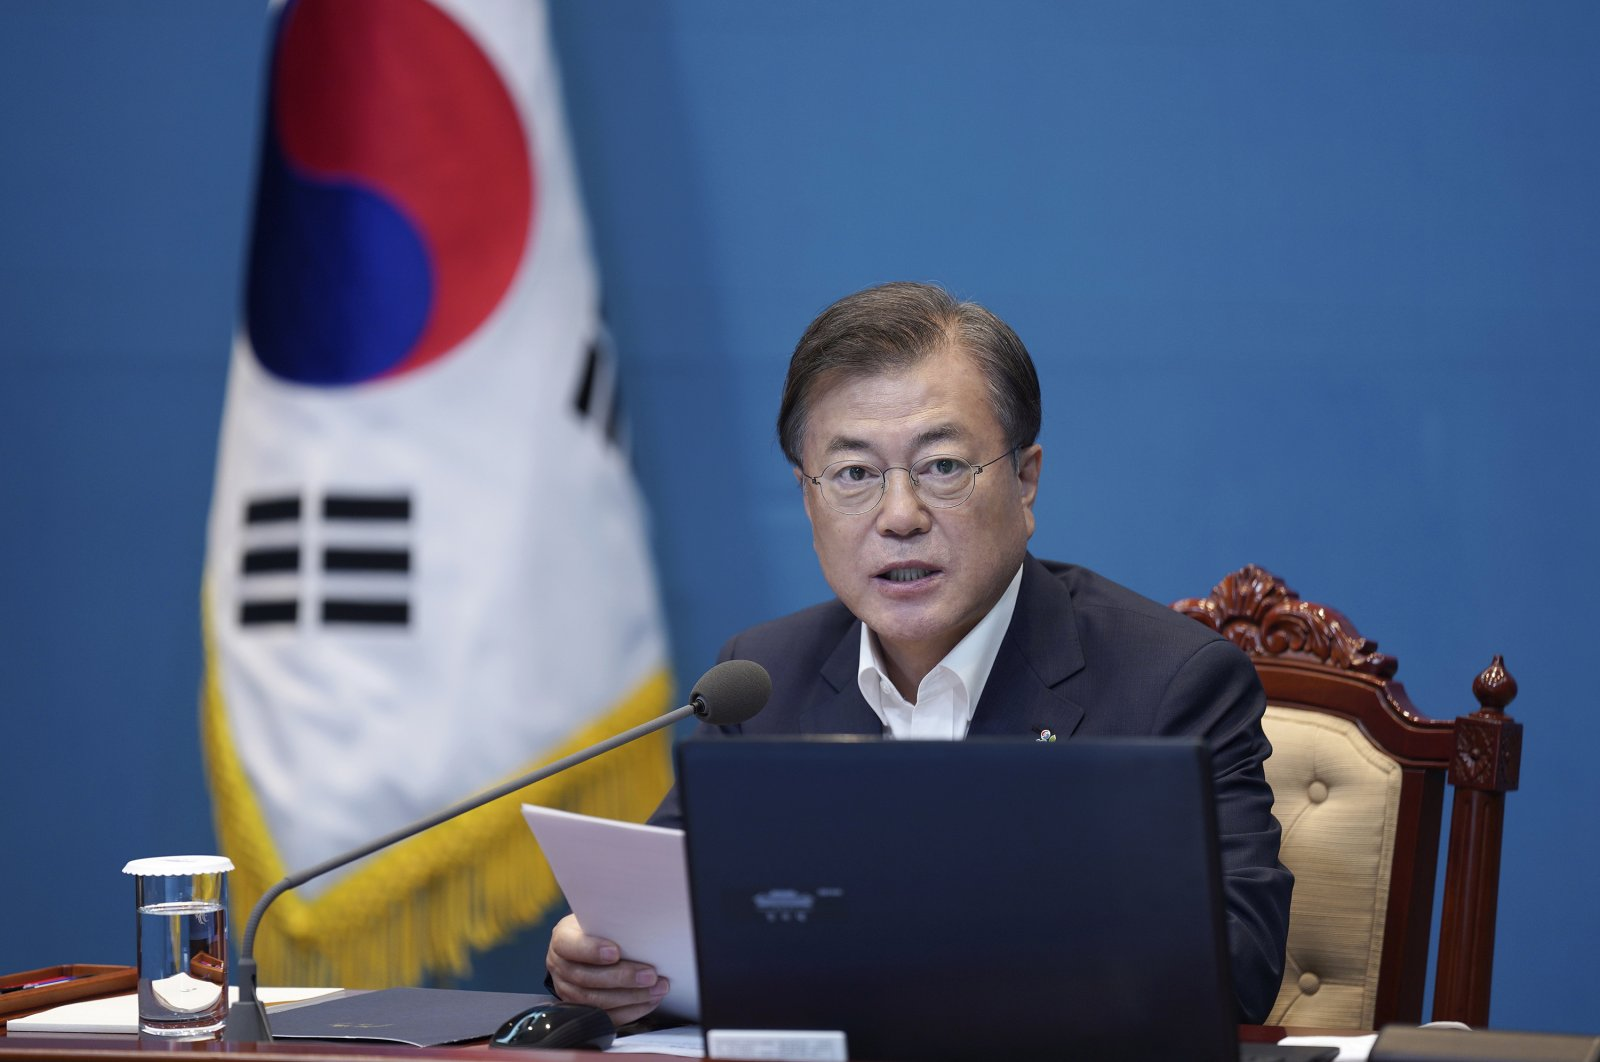 South Korean President Moon Jae-in speaks during a meeting with top presidential advisers at the presidential Blue House in Seoul, South Korea, Monday, June 15, 2020. (AP Photo)